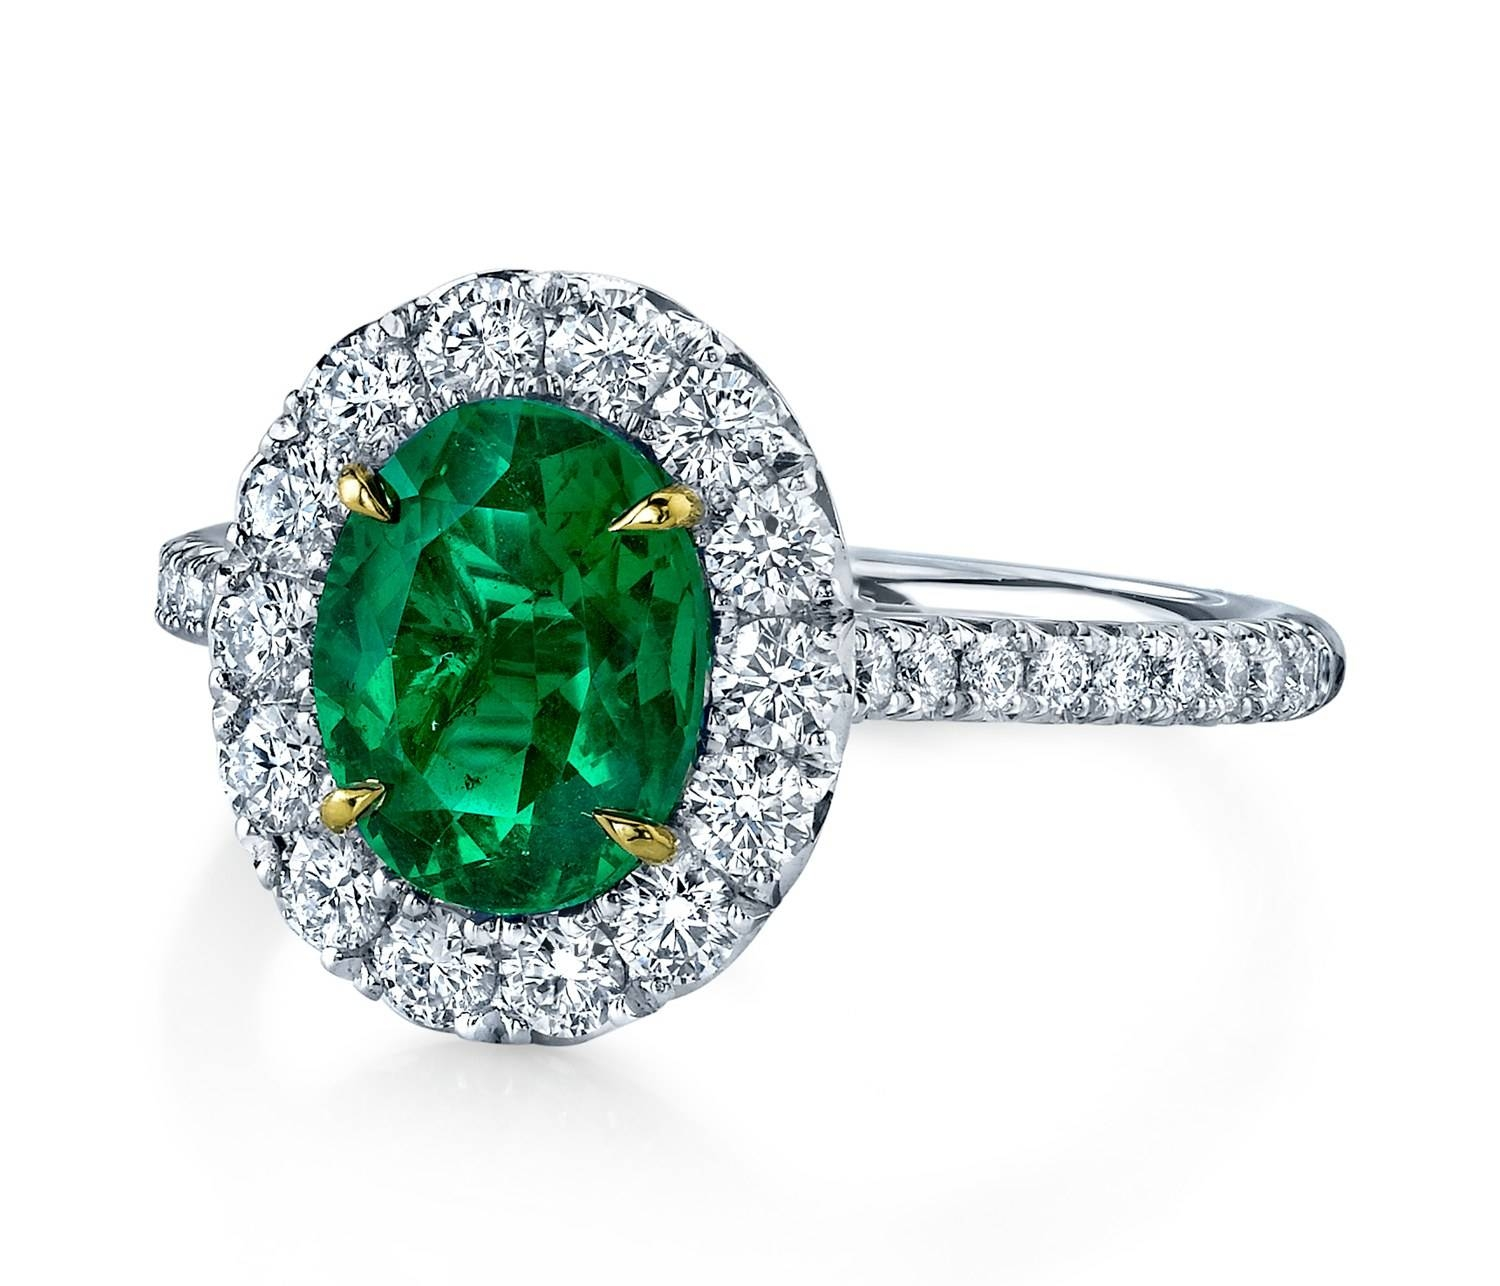 30 Diamond Engagement Rings So Sparkly You'll Need Sunglasses With Regard To Emrald Engagement Rings (View 13 of 15)